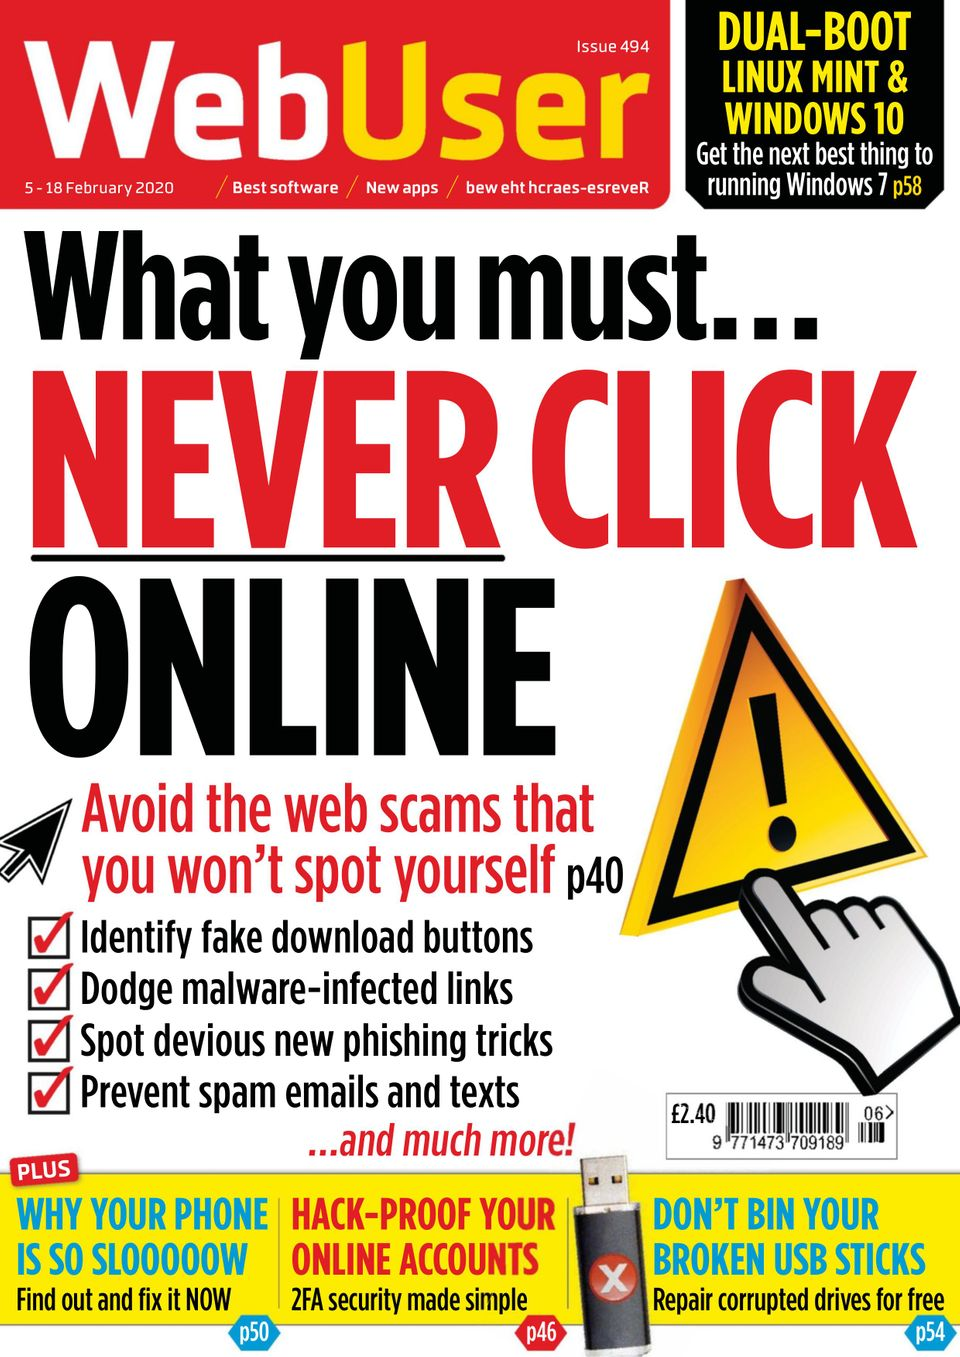 Get Your Digital Copy Of Webuser February 05 18 2020 Issue